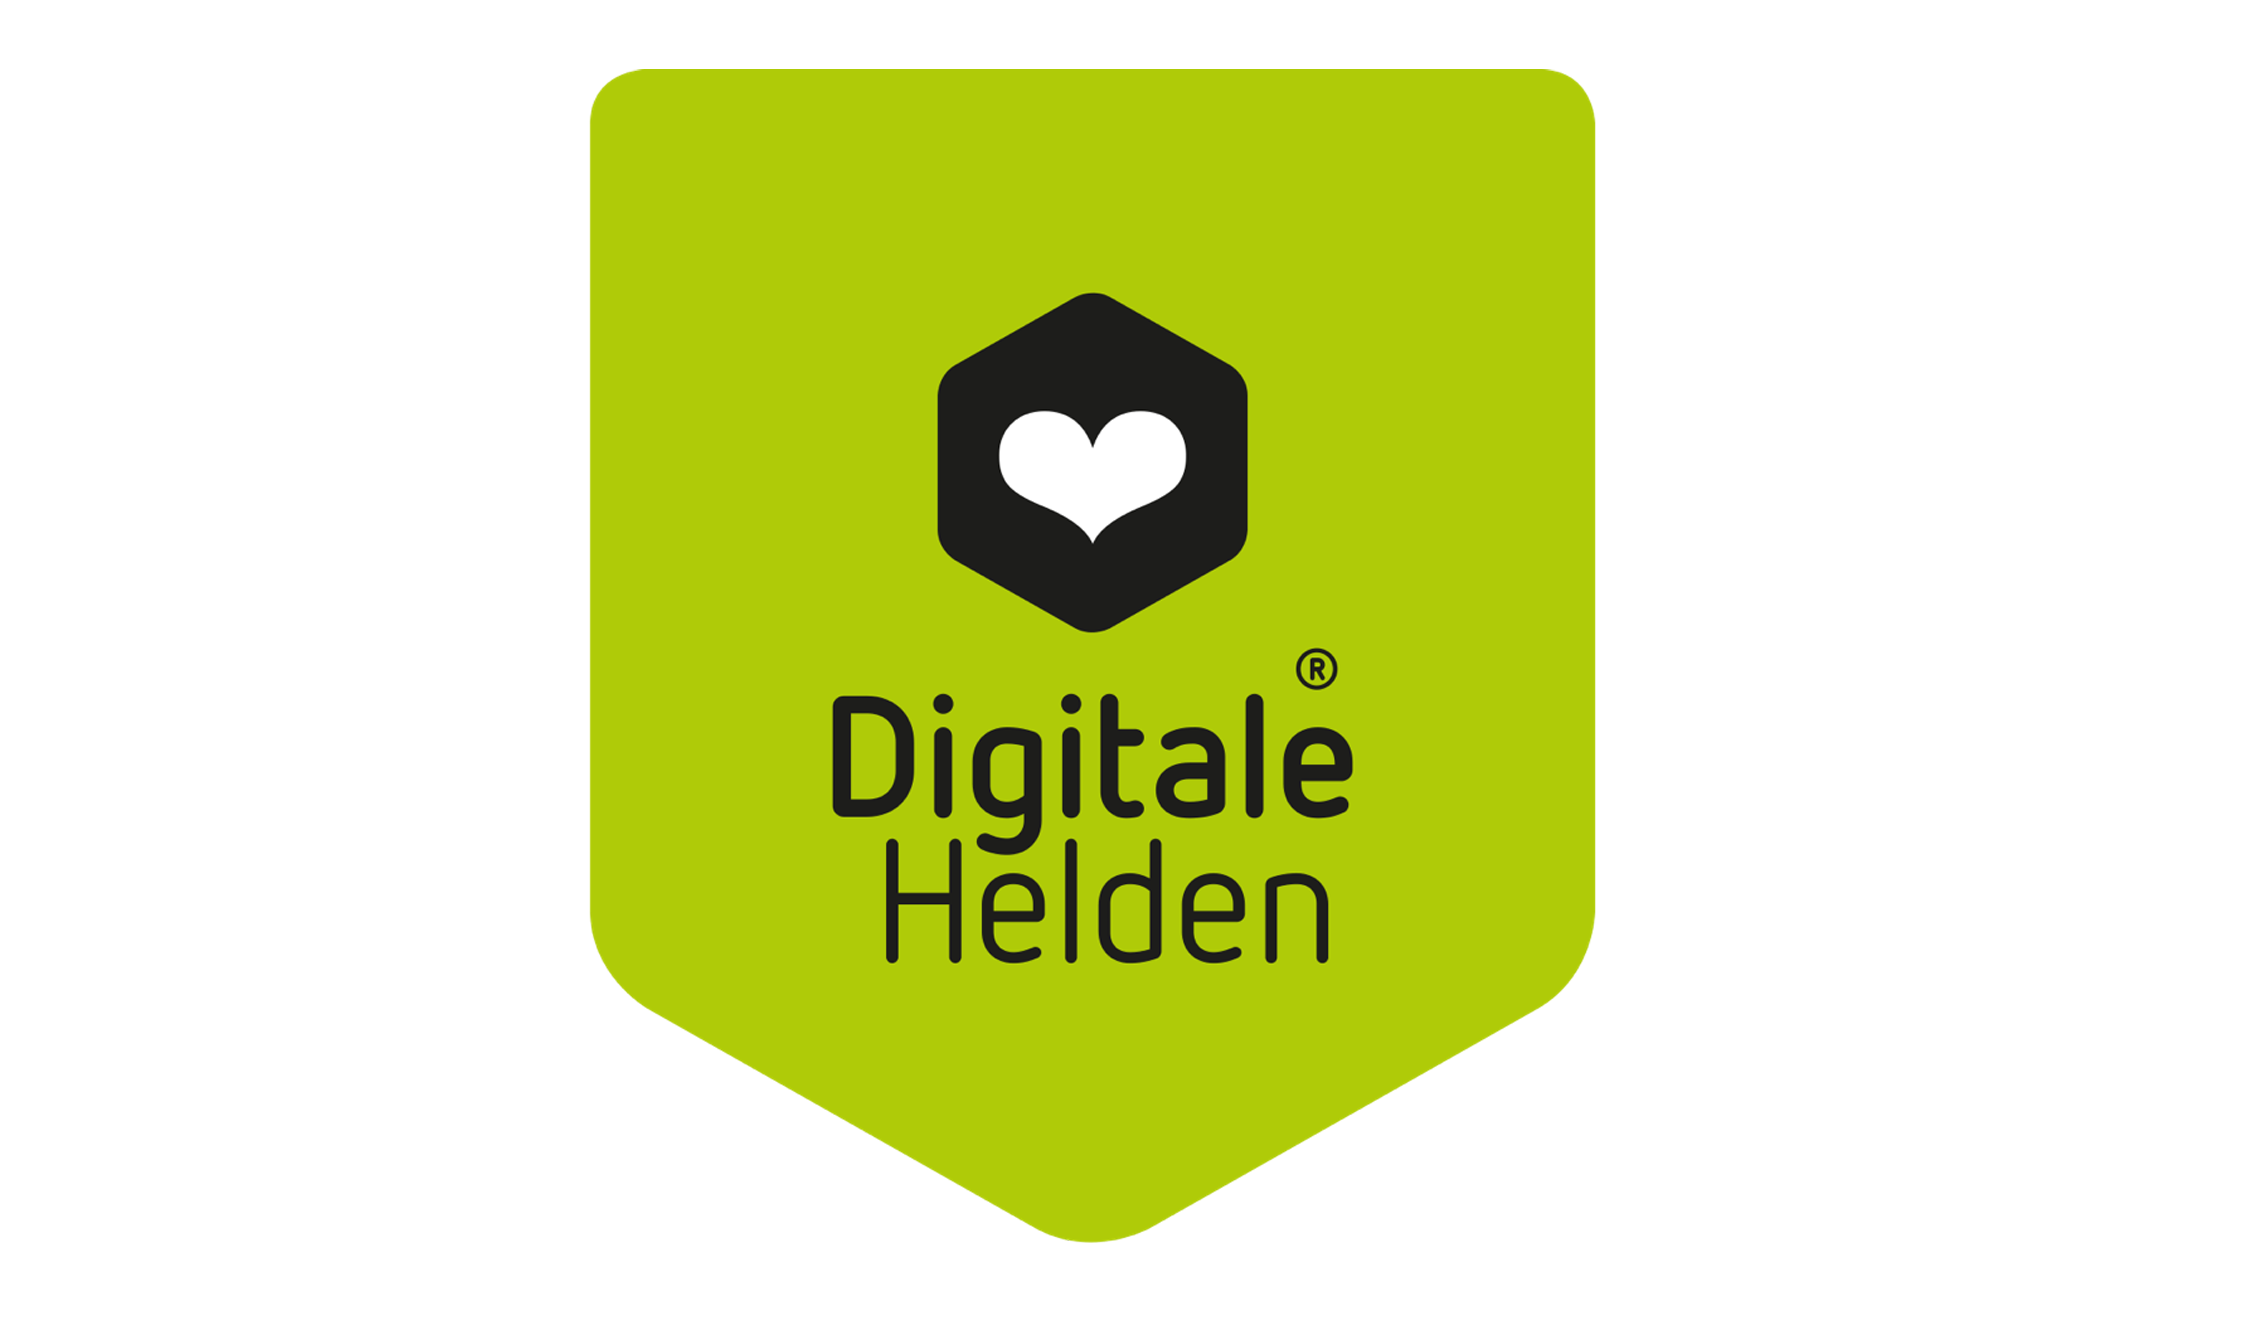 Digitale Helden